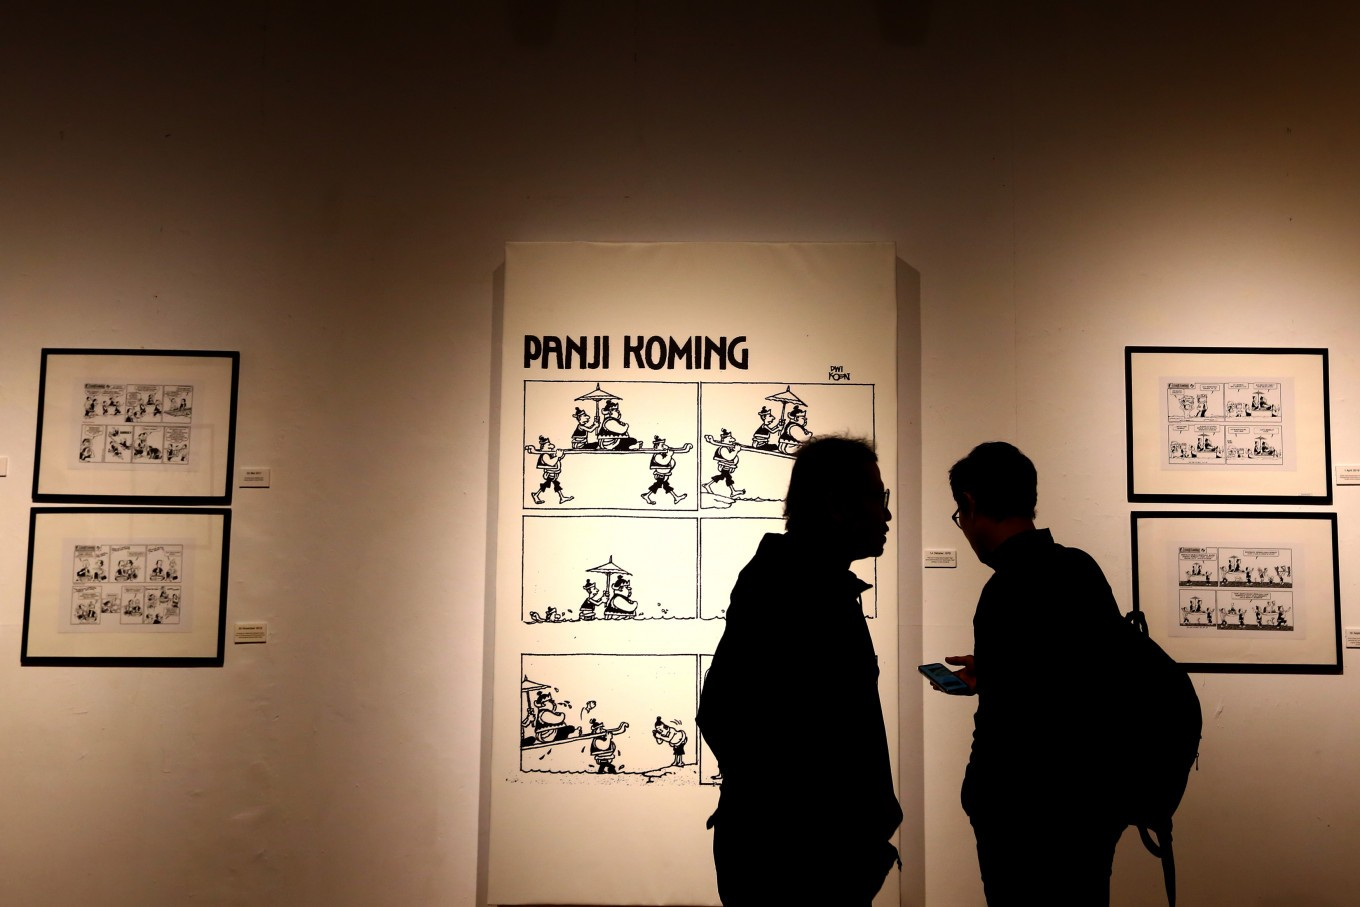 The first 'Panji Koming' comic strip (pictured above) was published in 'Kompas' on Oct. 14, 1979.